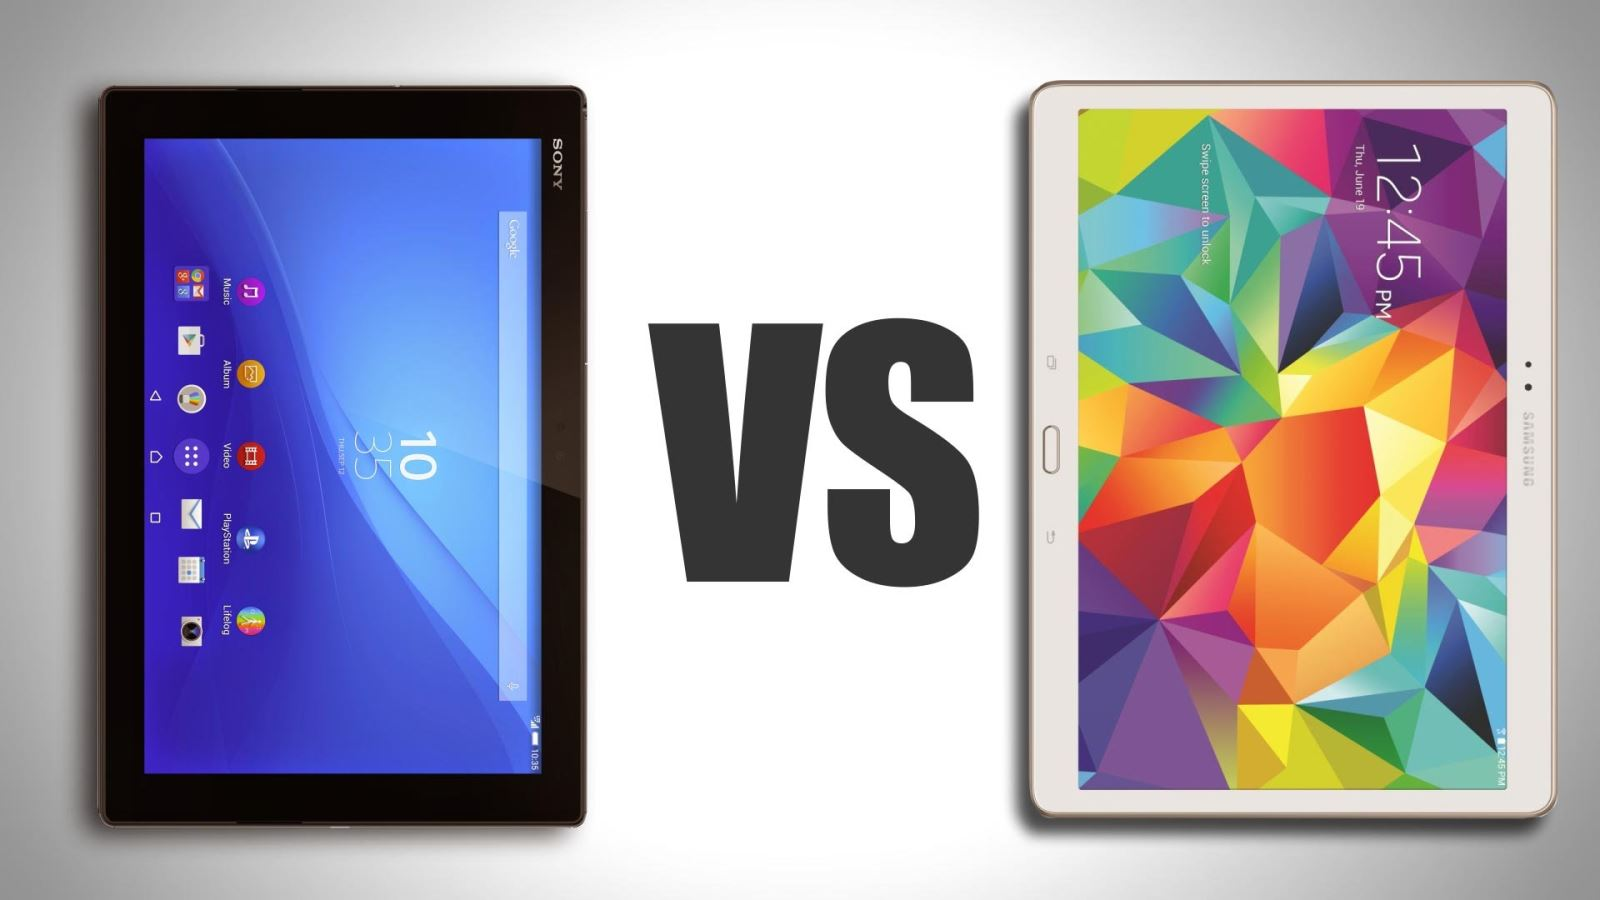 Xperia_Z4_Tablet_vs_Galaxy_Tab_S_10_5